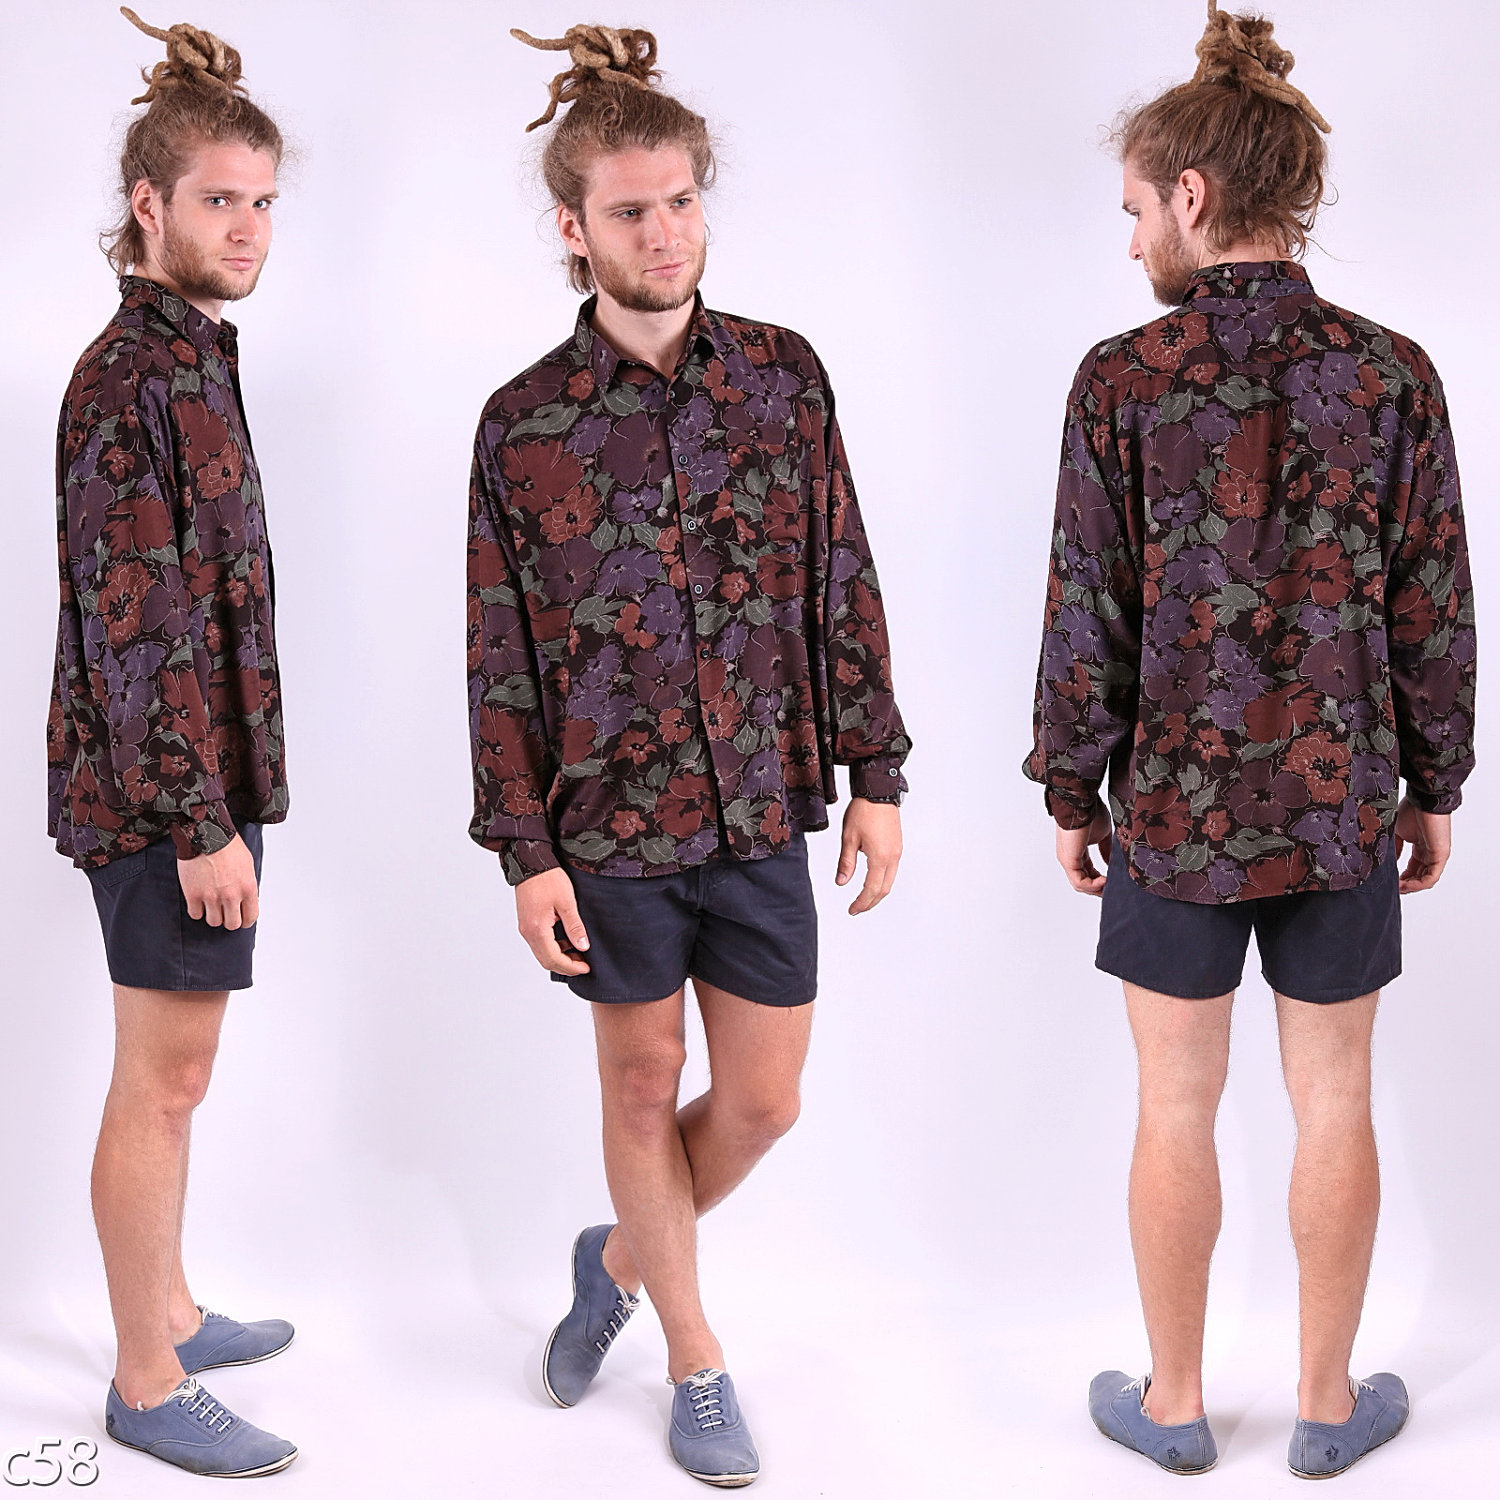 9f1166dbaaa dreds and floral shirt. Floral print